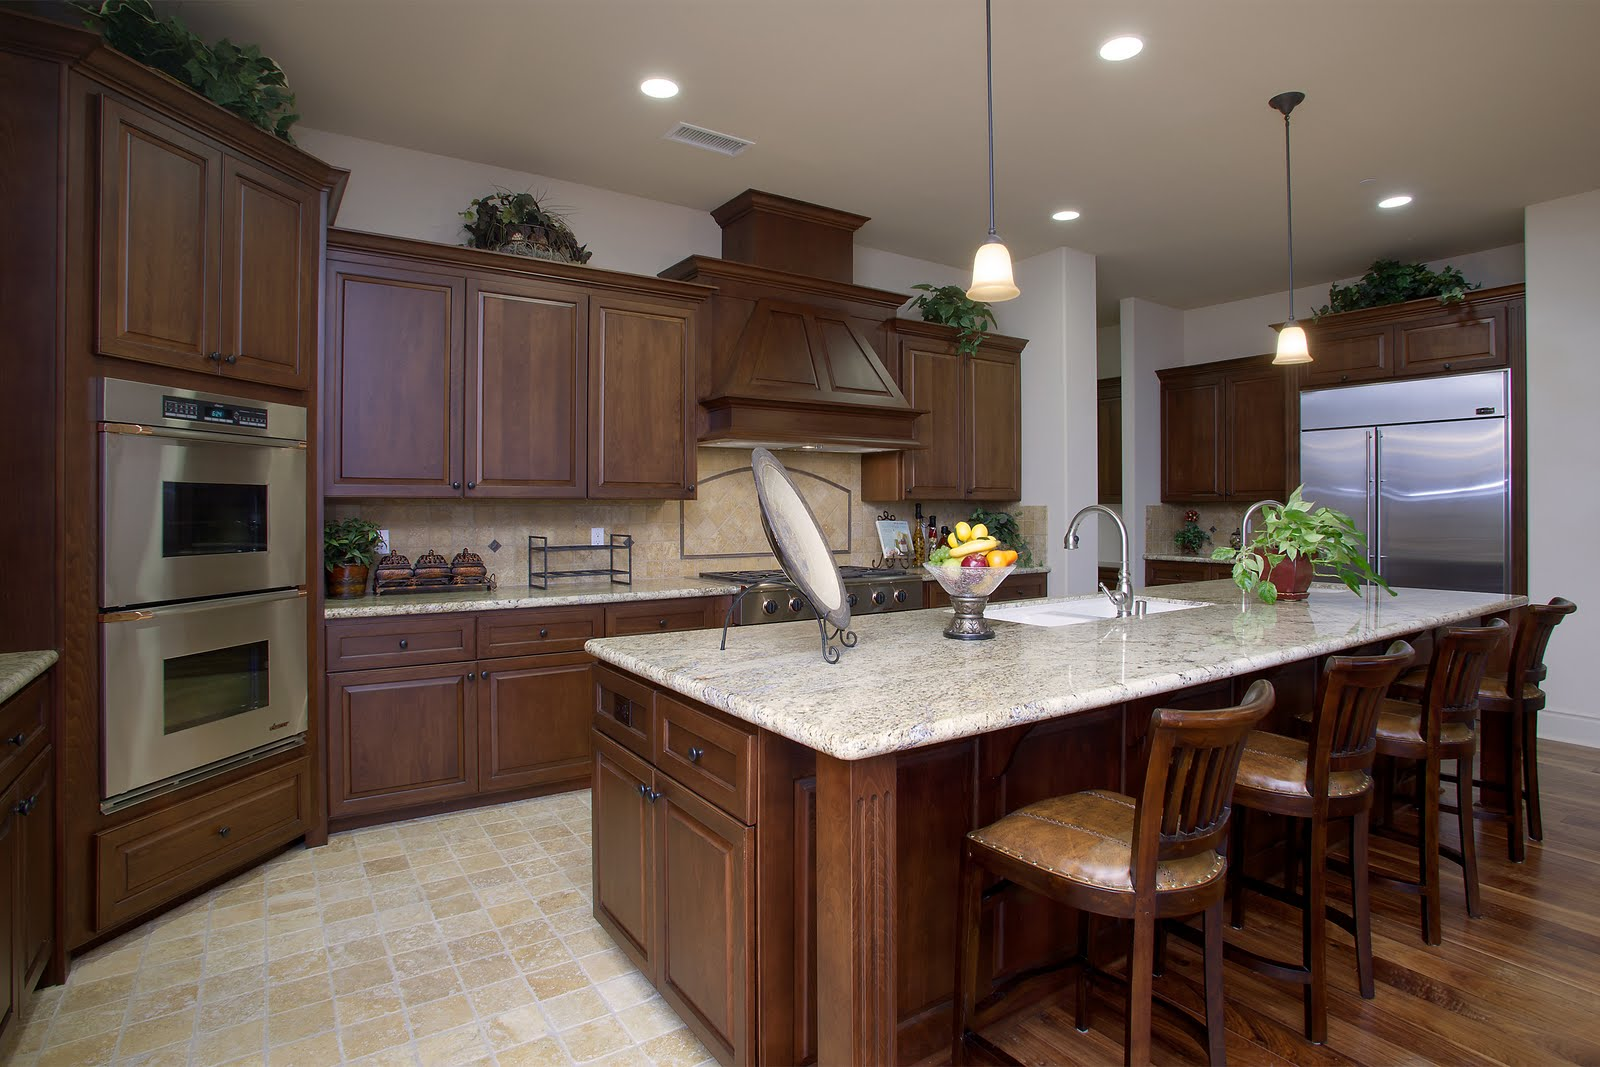 Kitchen model homes kitchen design photos 2015 for Home kitchen